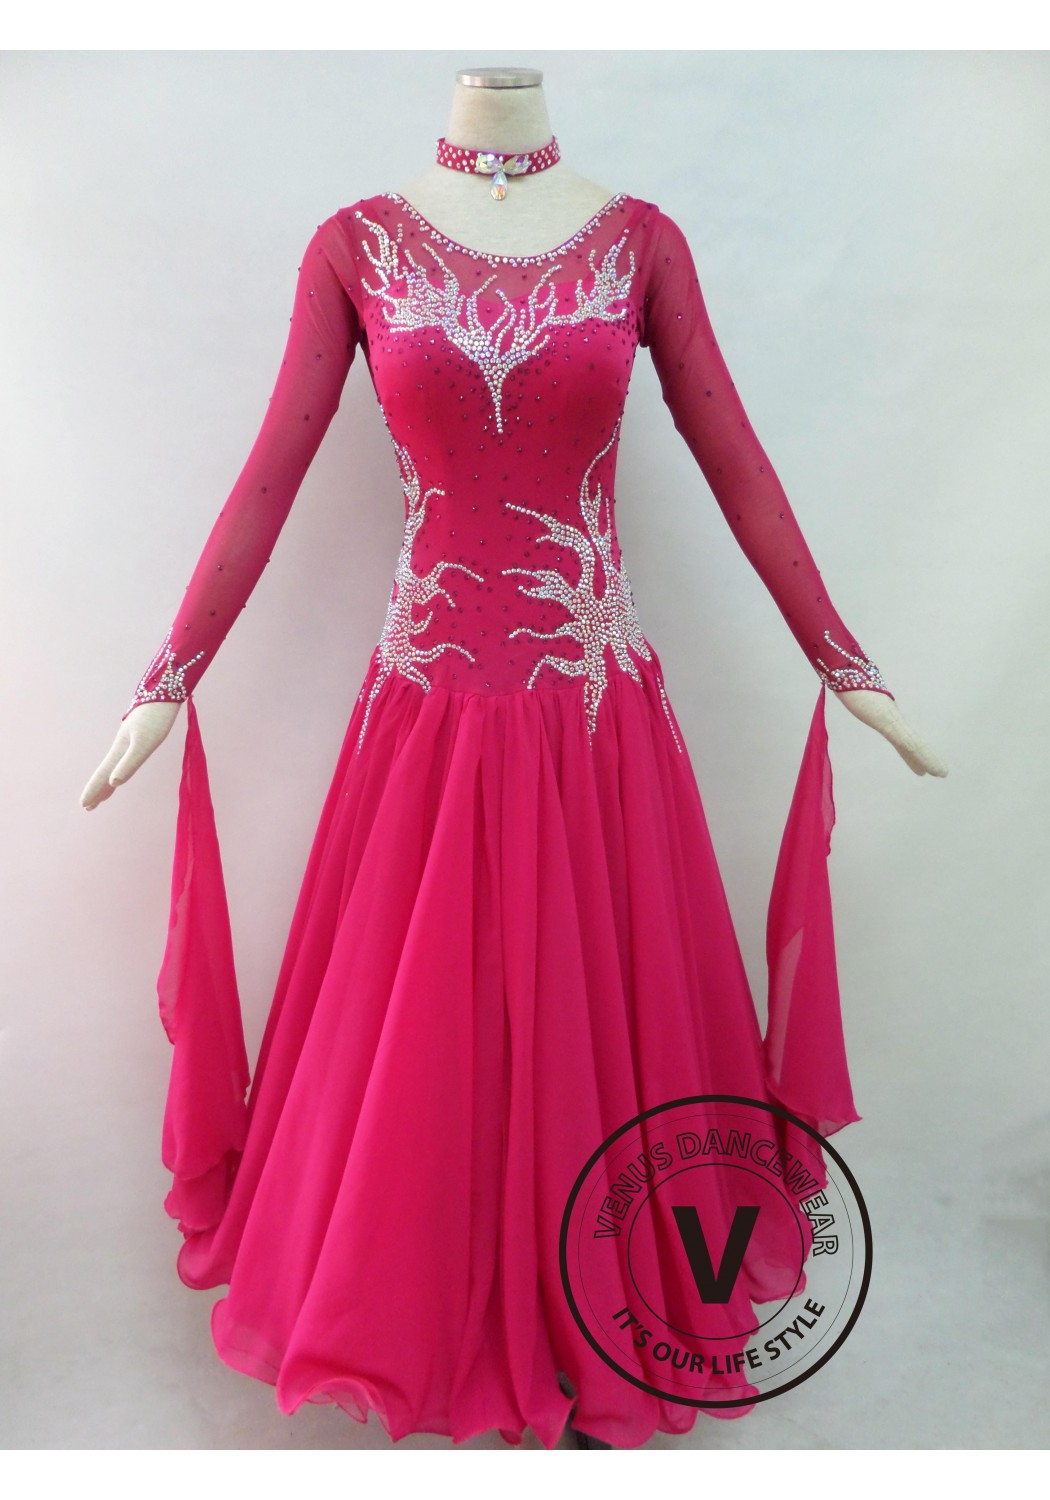 Rose Competition Ballroom Dance Dress